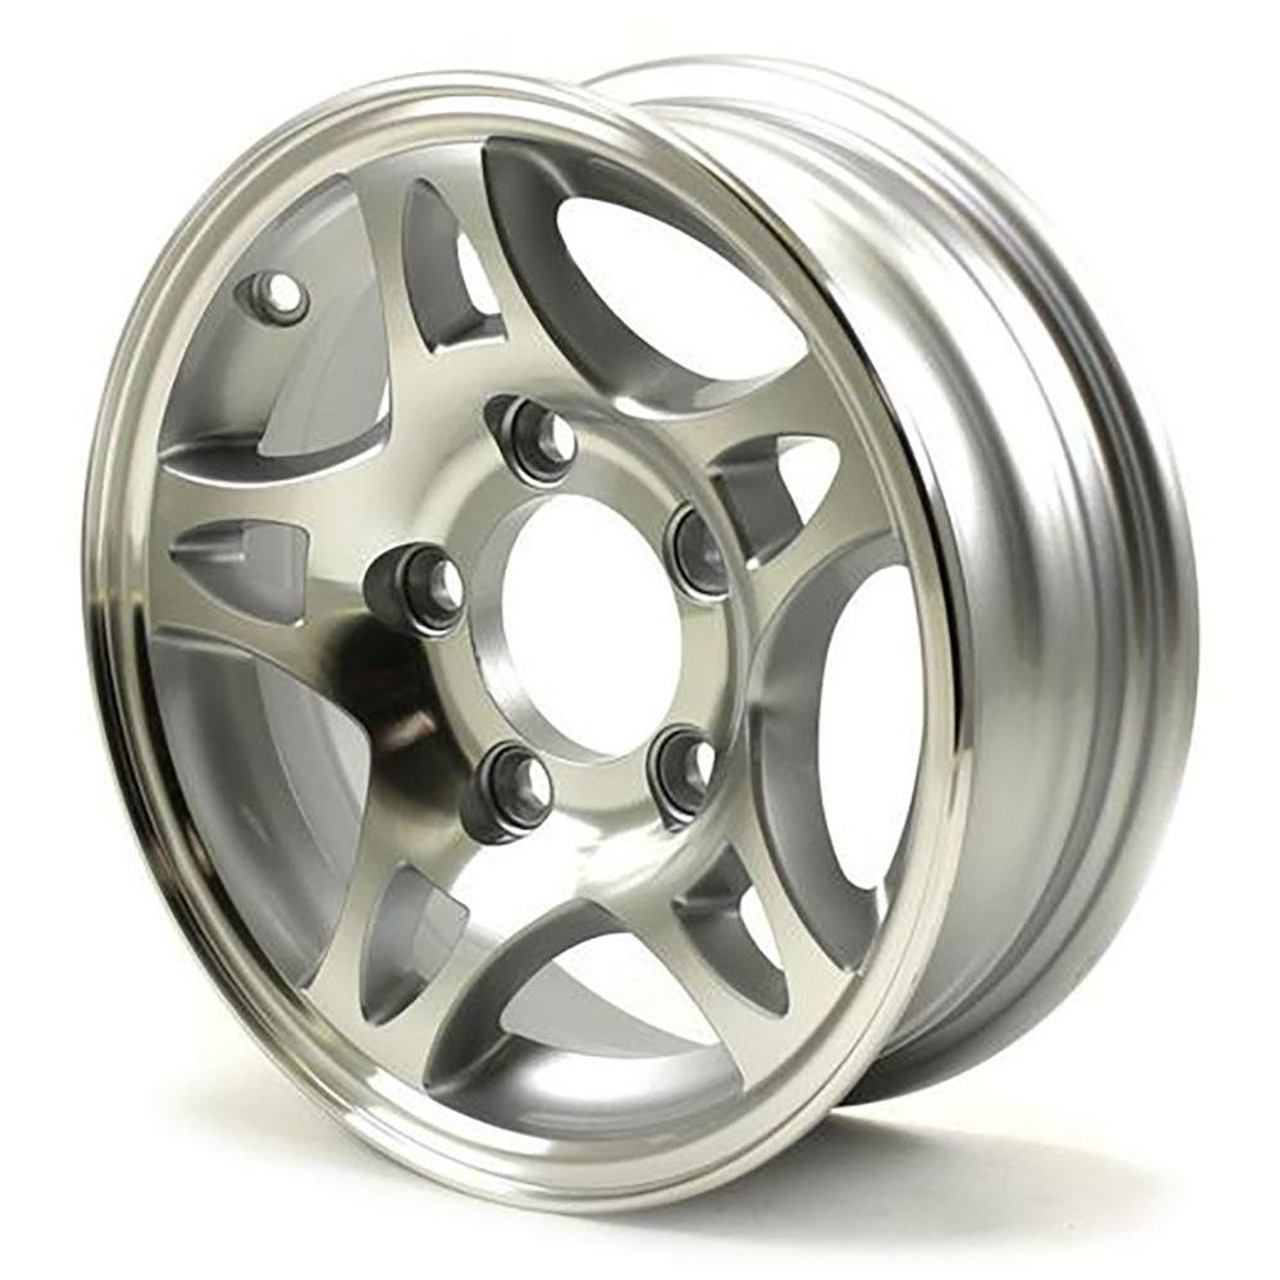 "12X4 5-Lug on 4.5"" Aluminum S5 Trailer Wheel - S524545"